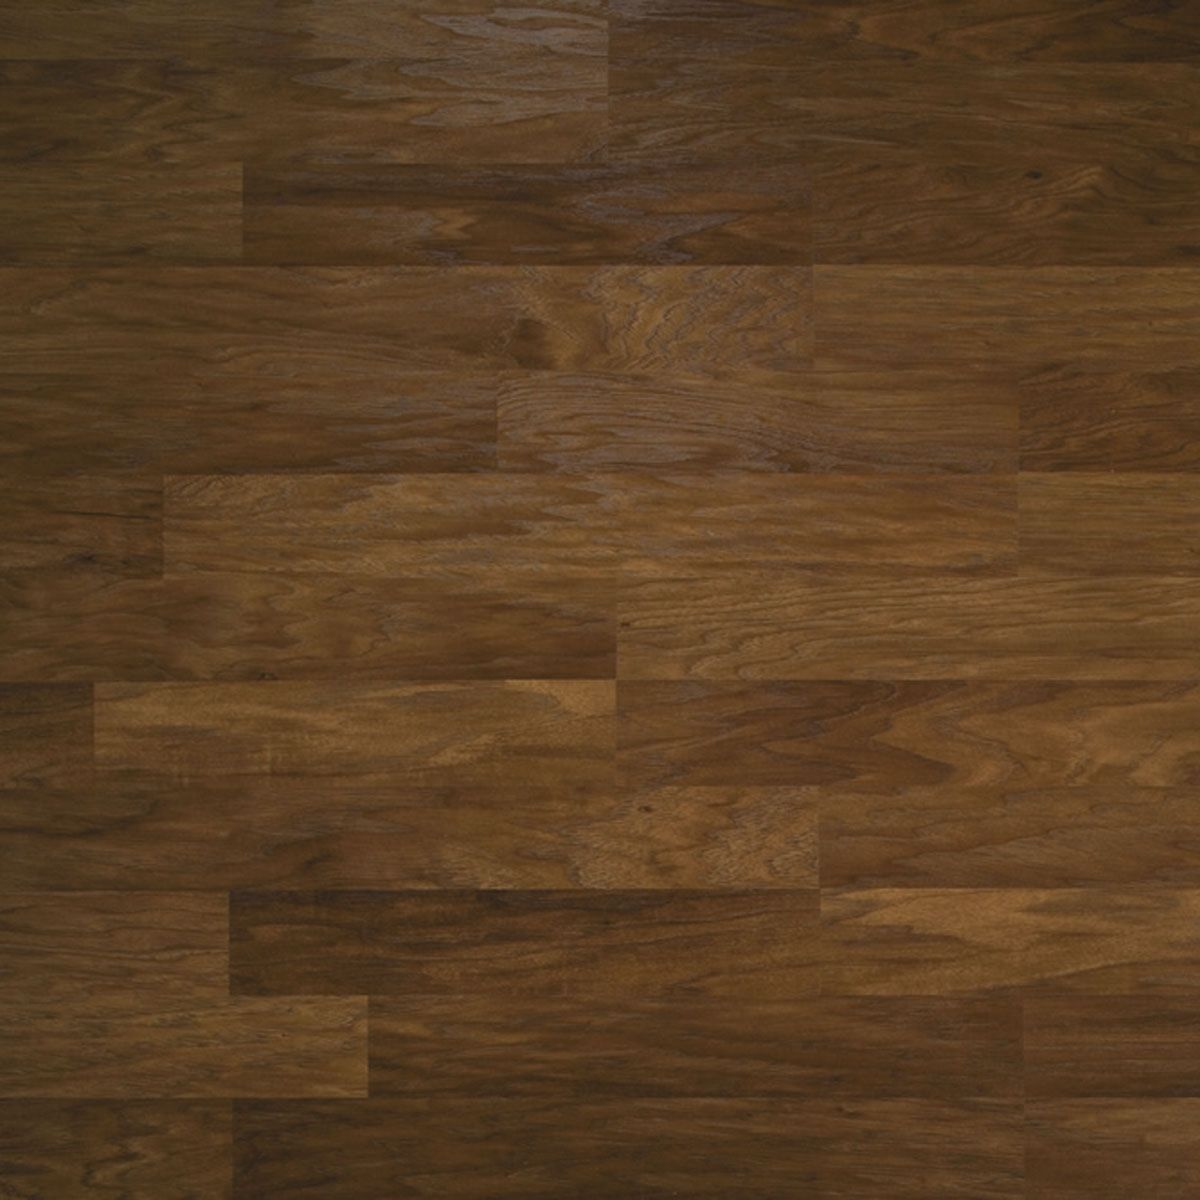 Oak wood floor texture awesome ideas 11026 floors map for Dark wood vinyl flooring